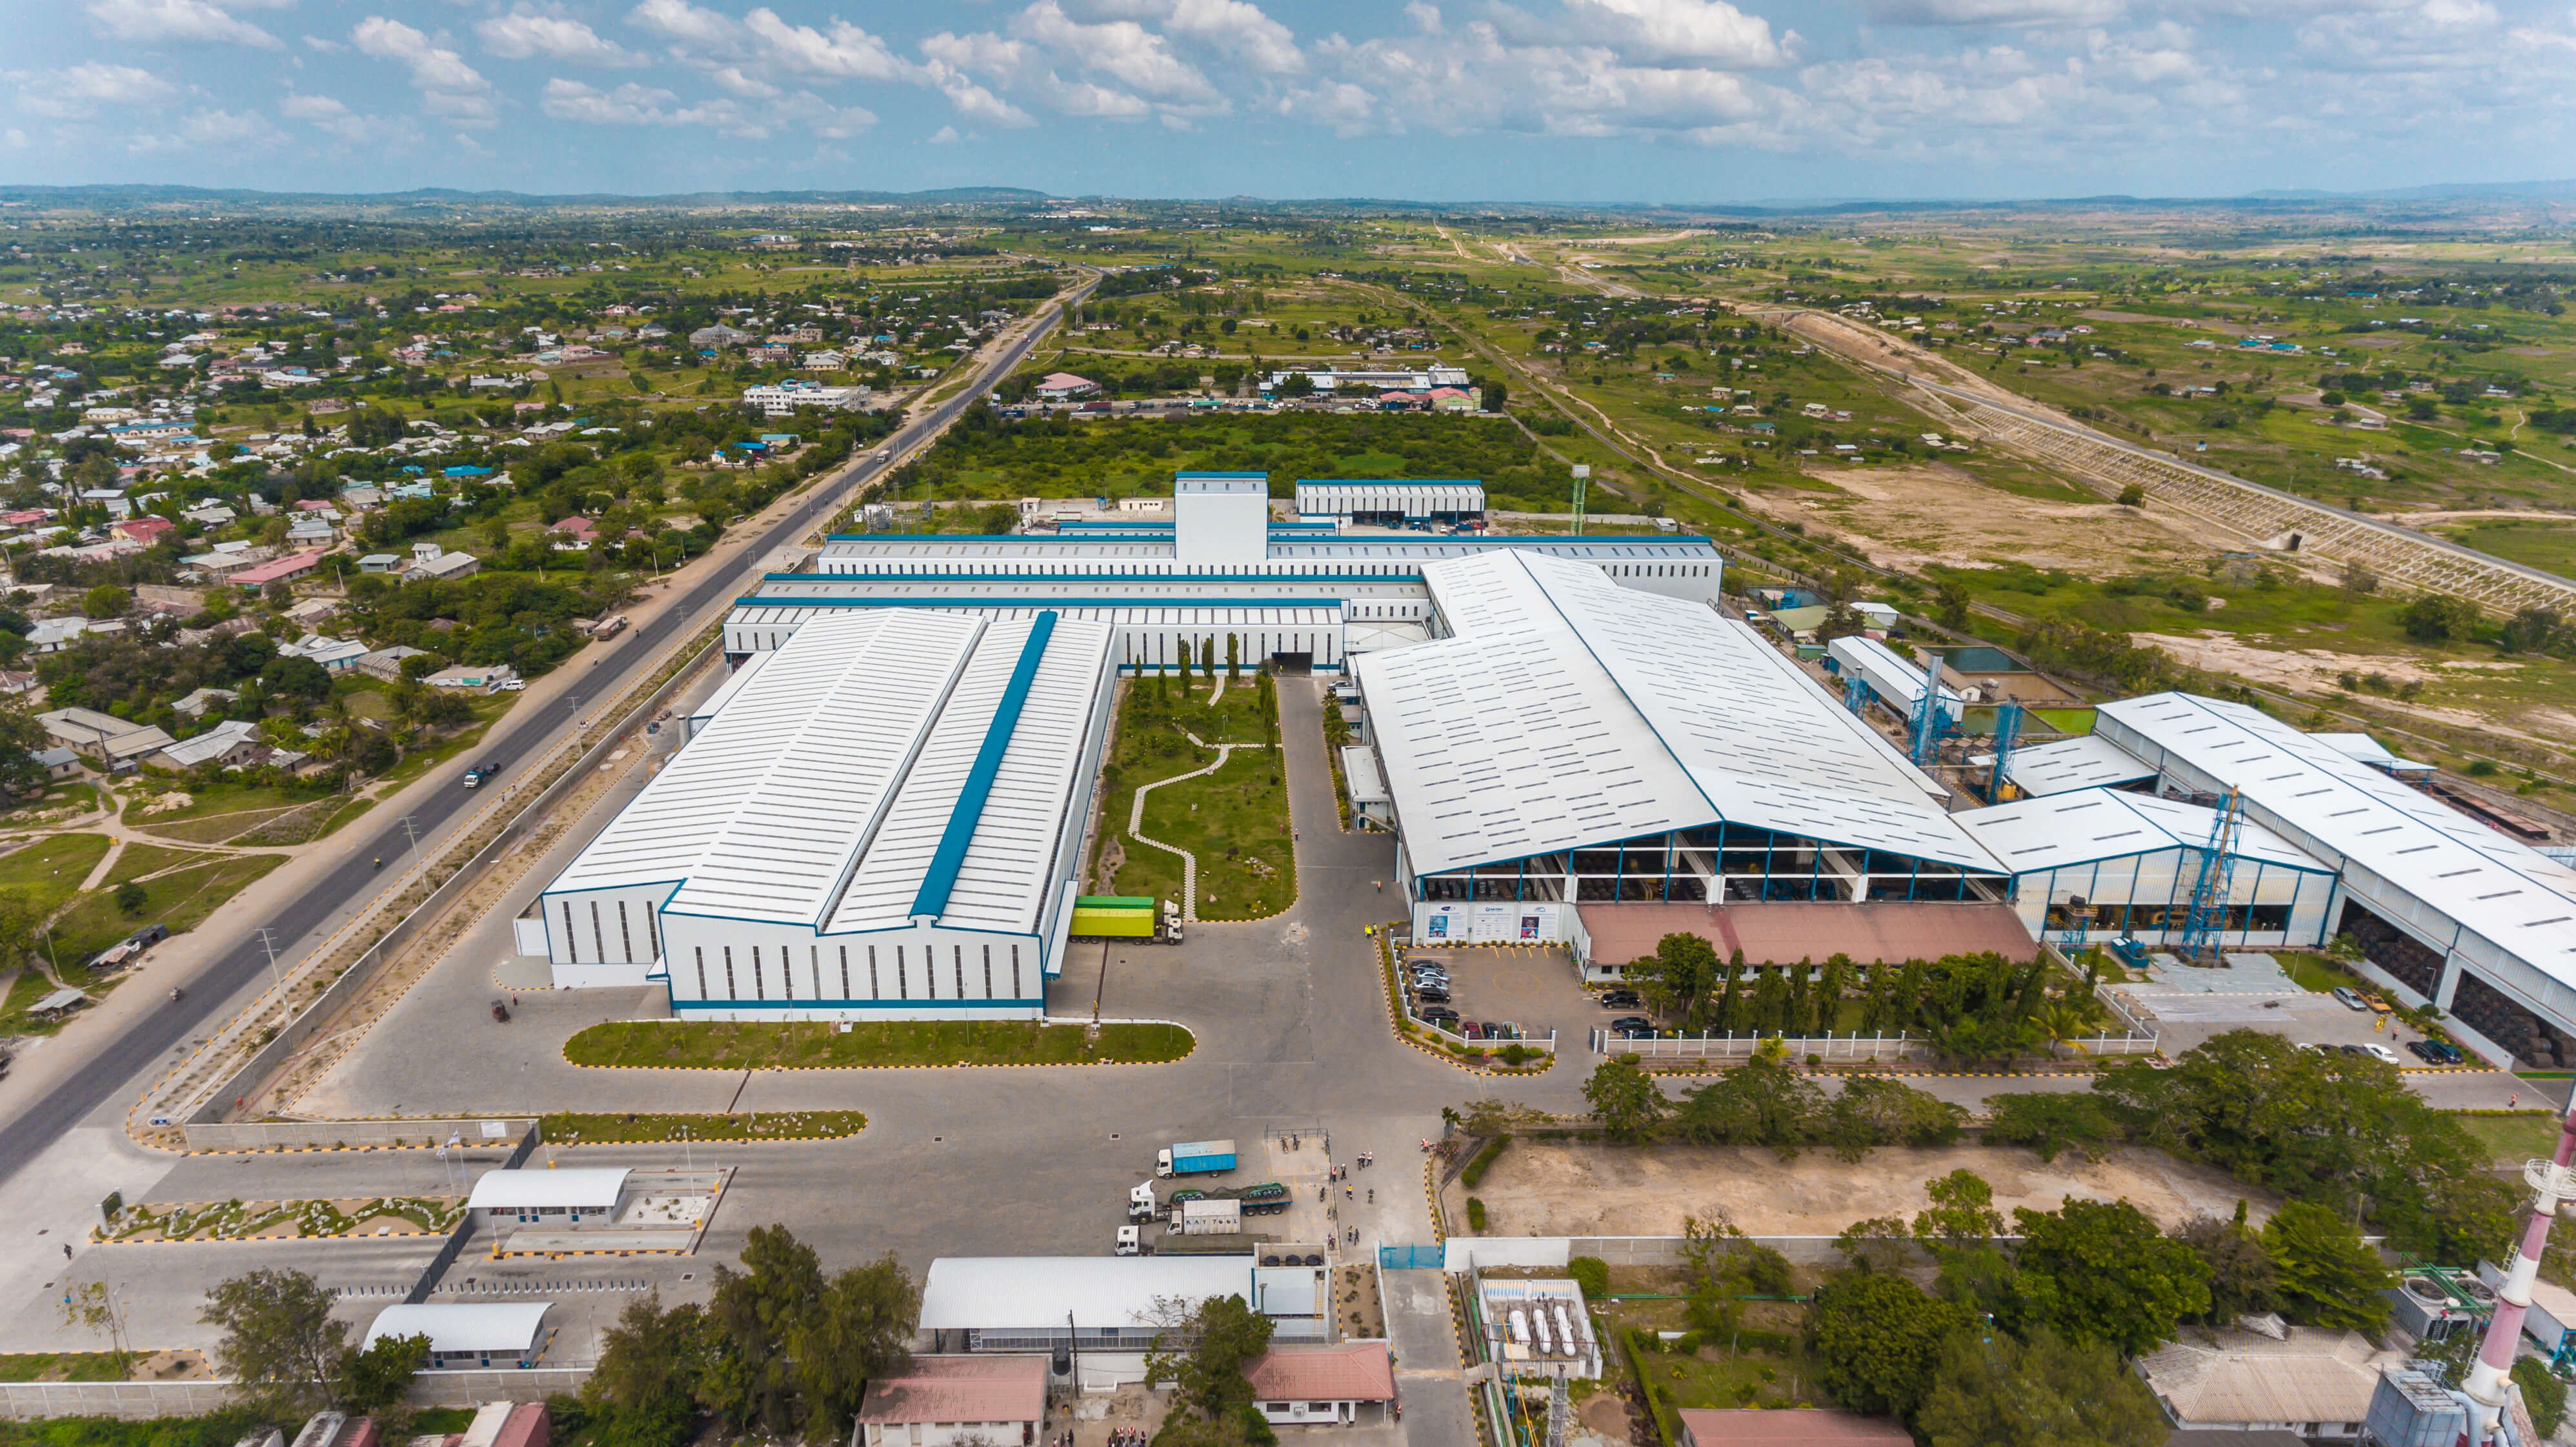 SSS4640 - 2016-Factory for Rolling Mills-Mariakani3